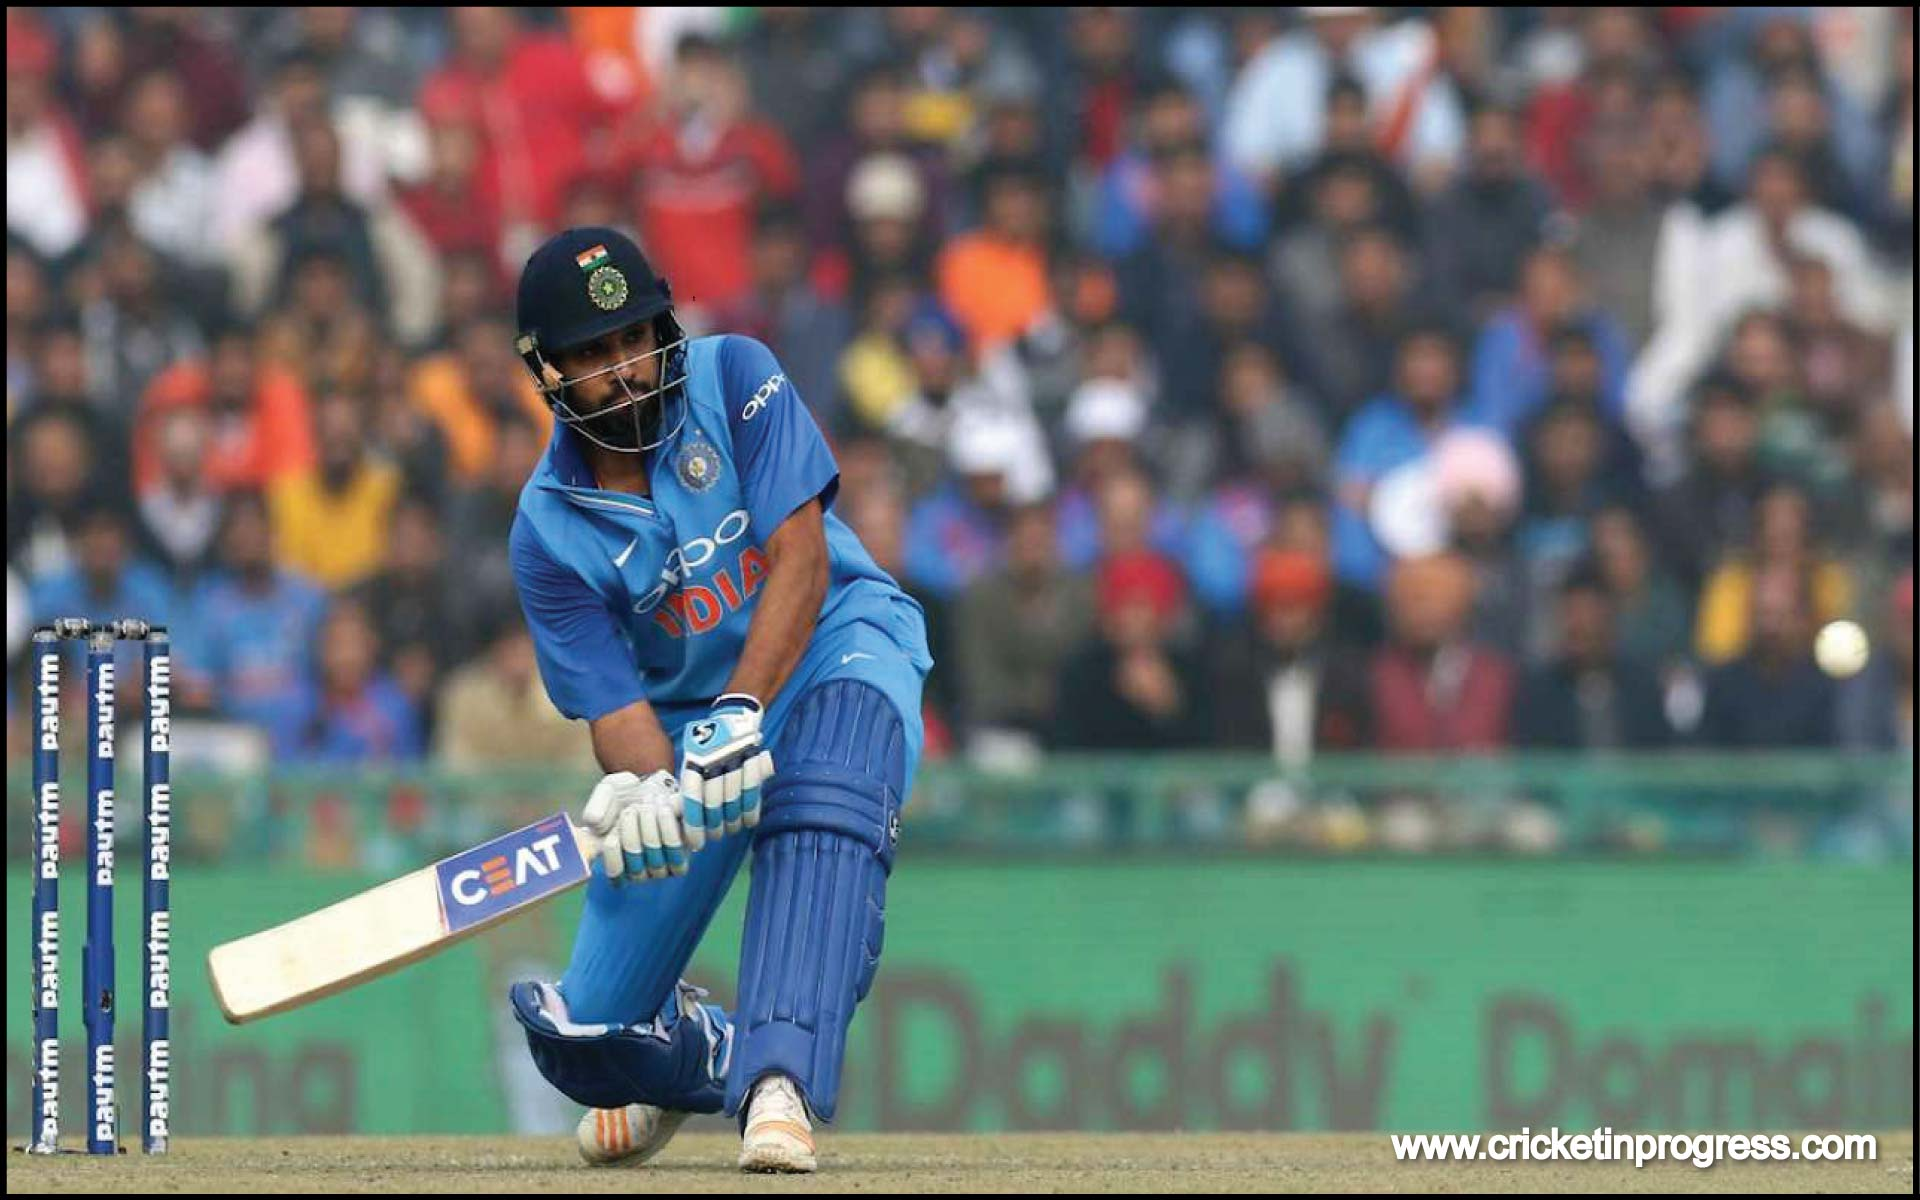 Rohit Sharma, you beauty!